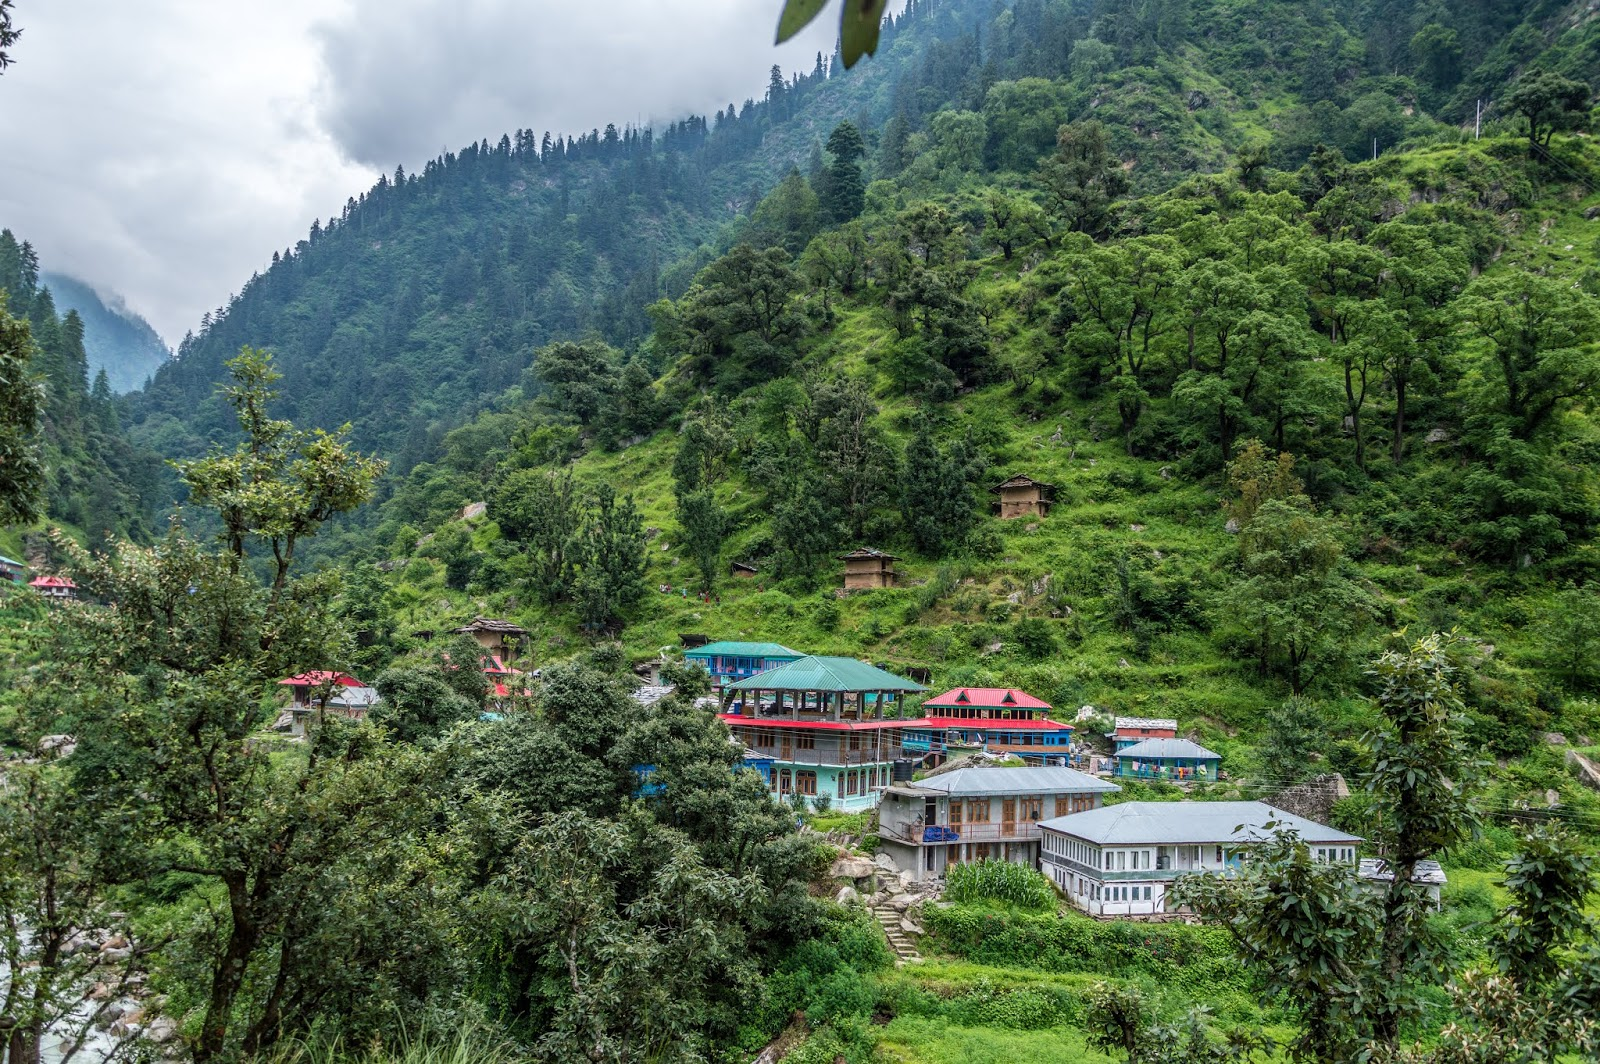 Puccca multistories houses near Singhaad across the river looked beautiful from a distance. en route Srikhnad Mahadev Yatra